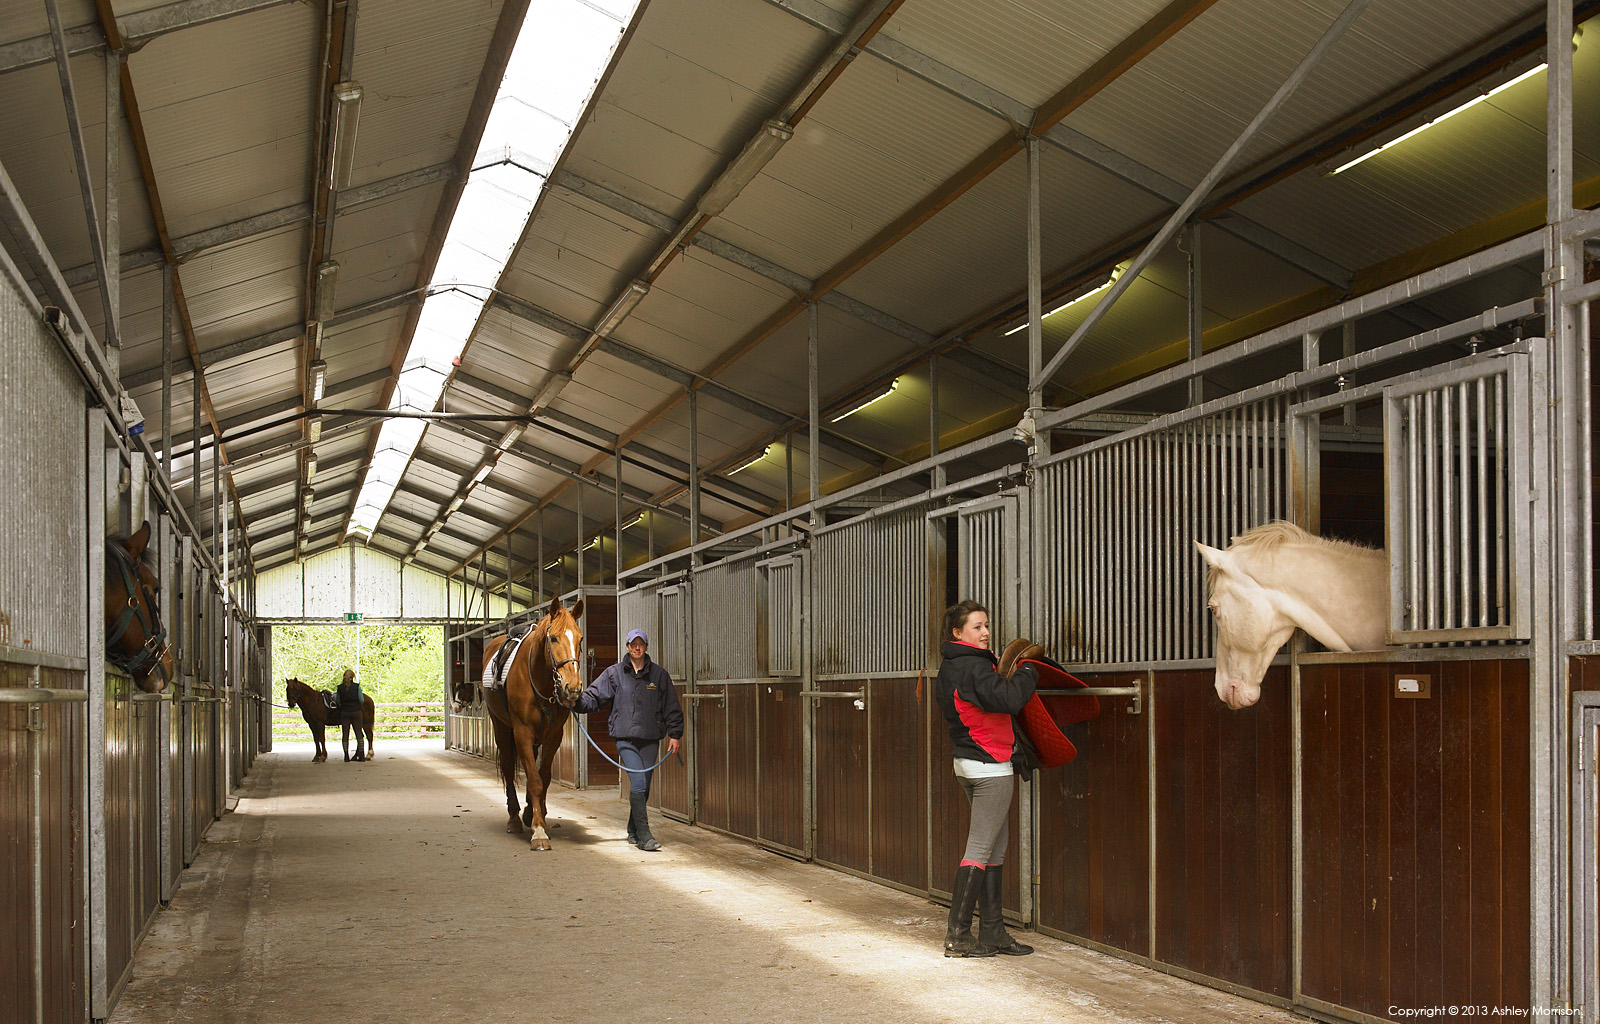 The Equestrian Centre stables at Mount Juliet Country Estate in County Kilkenny by Ashley Morrison.